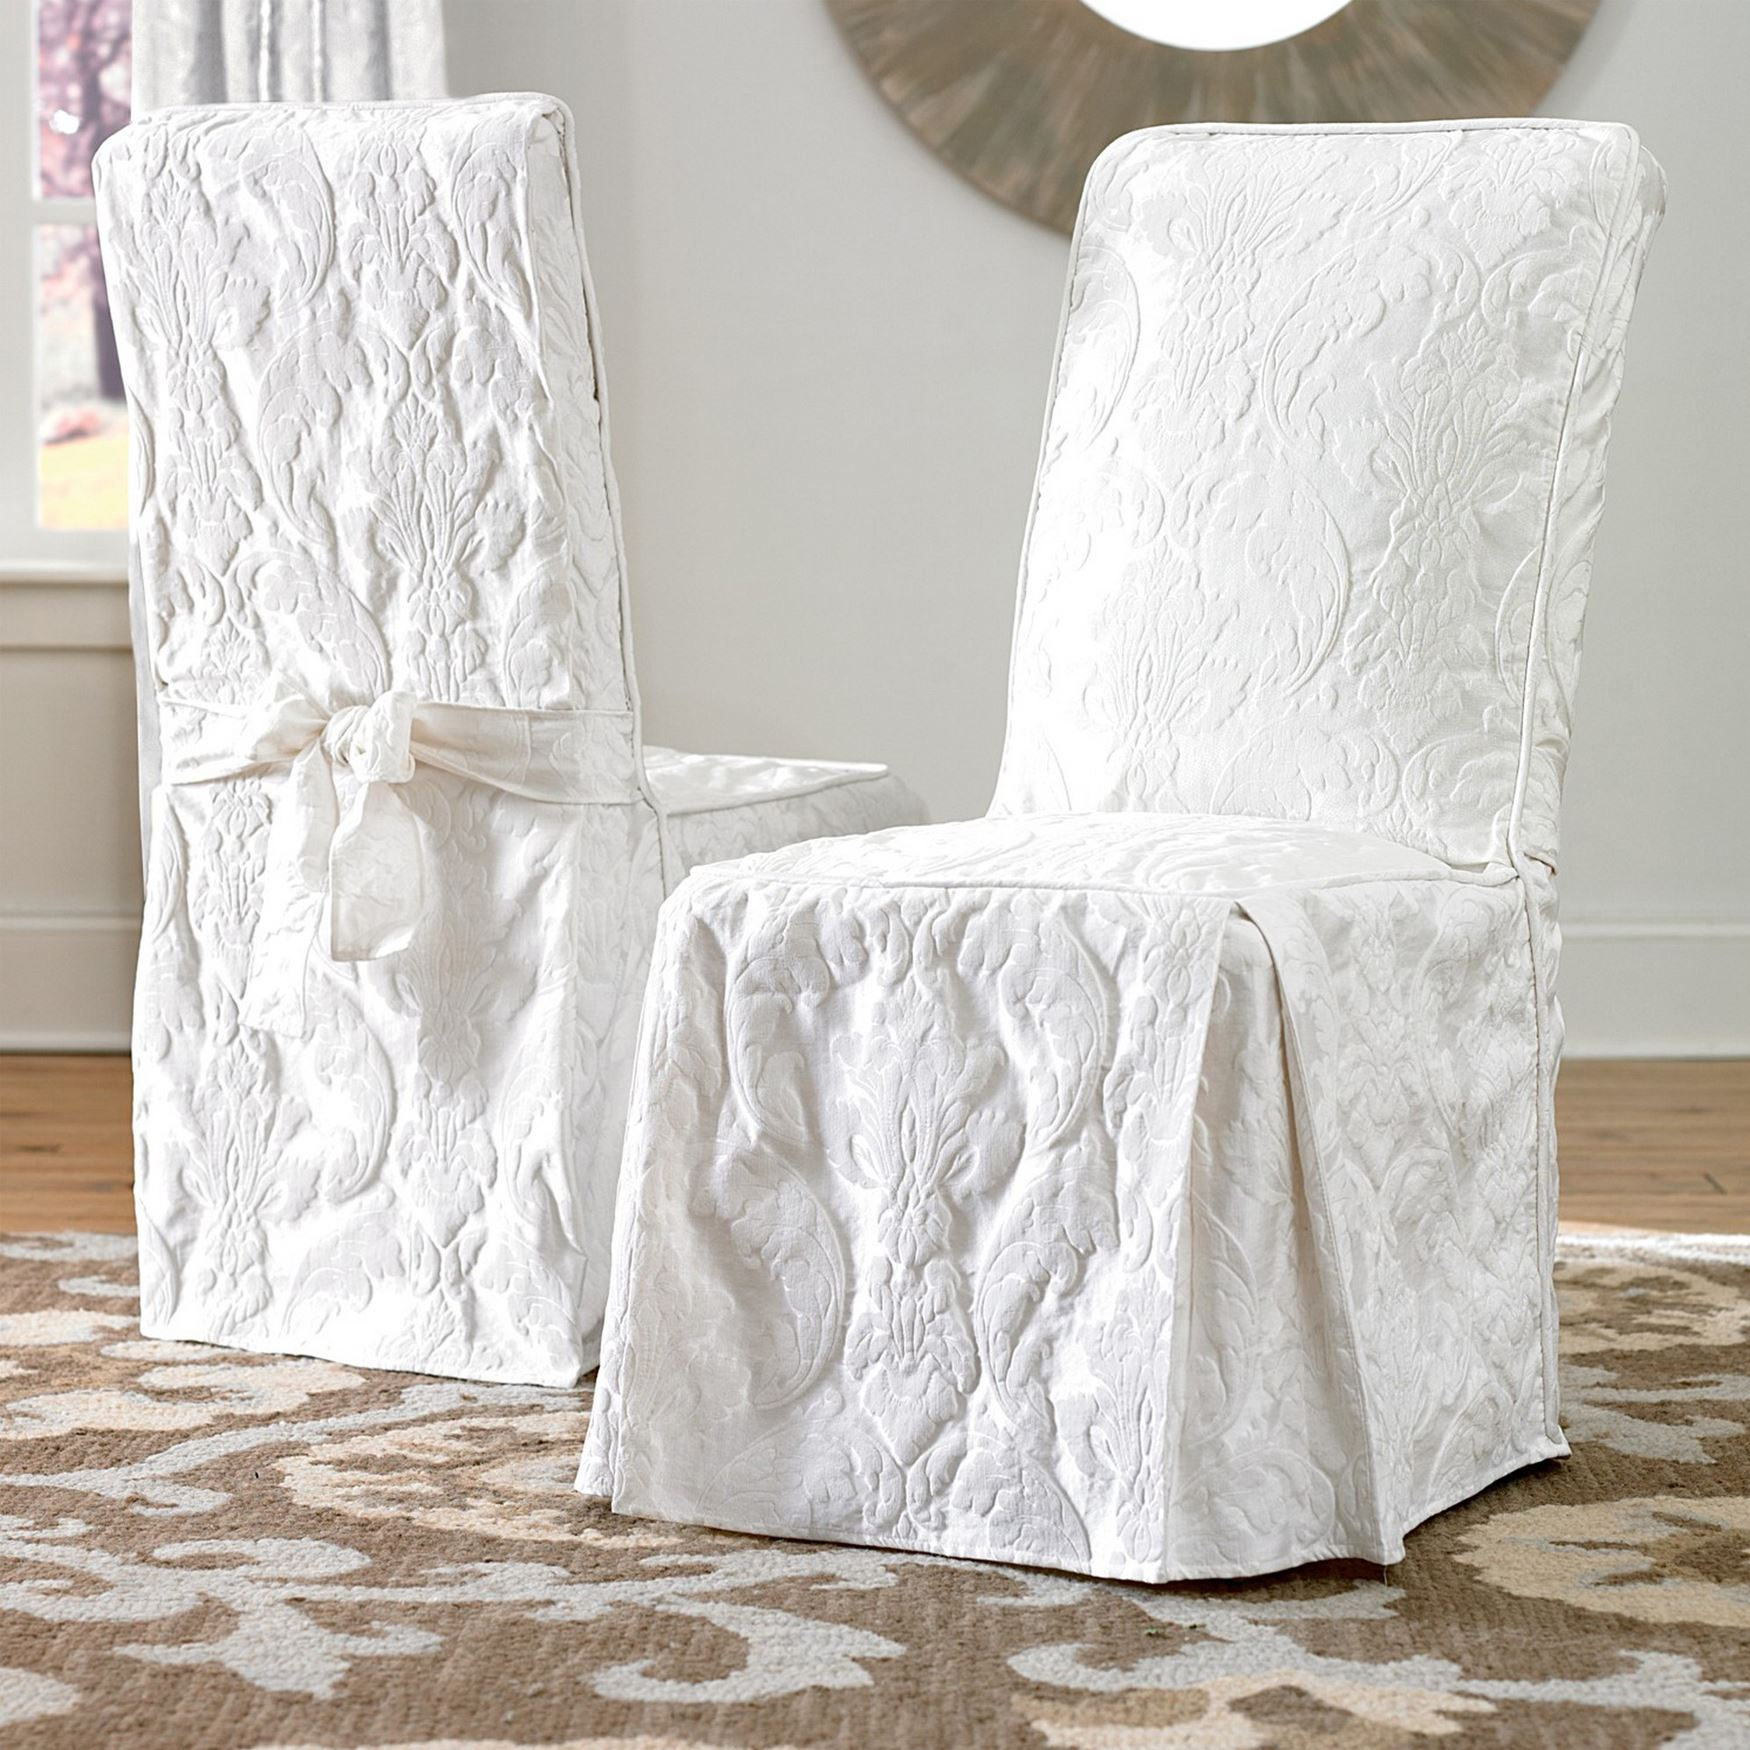 brylanehome chair covers contemporary dining room chairs uk matelasse long cover plus size